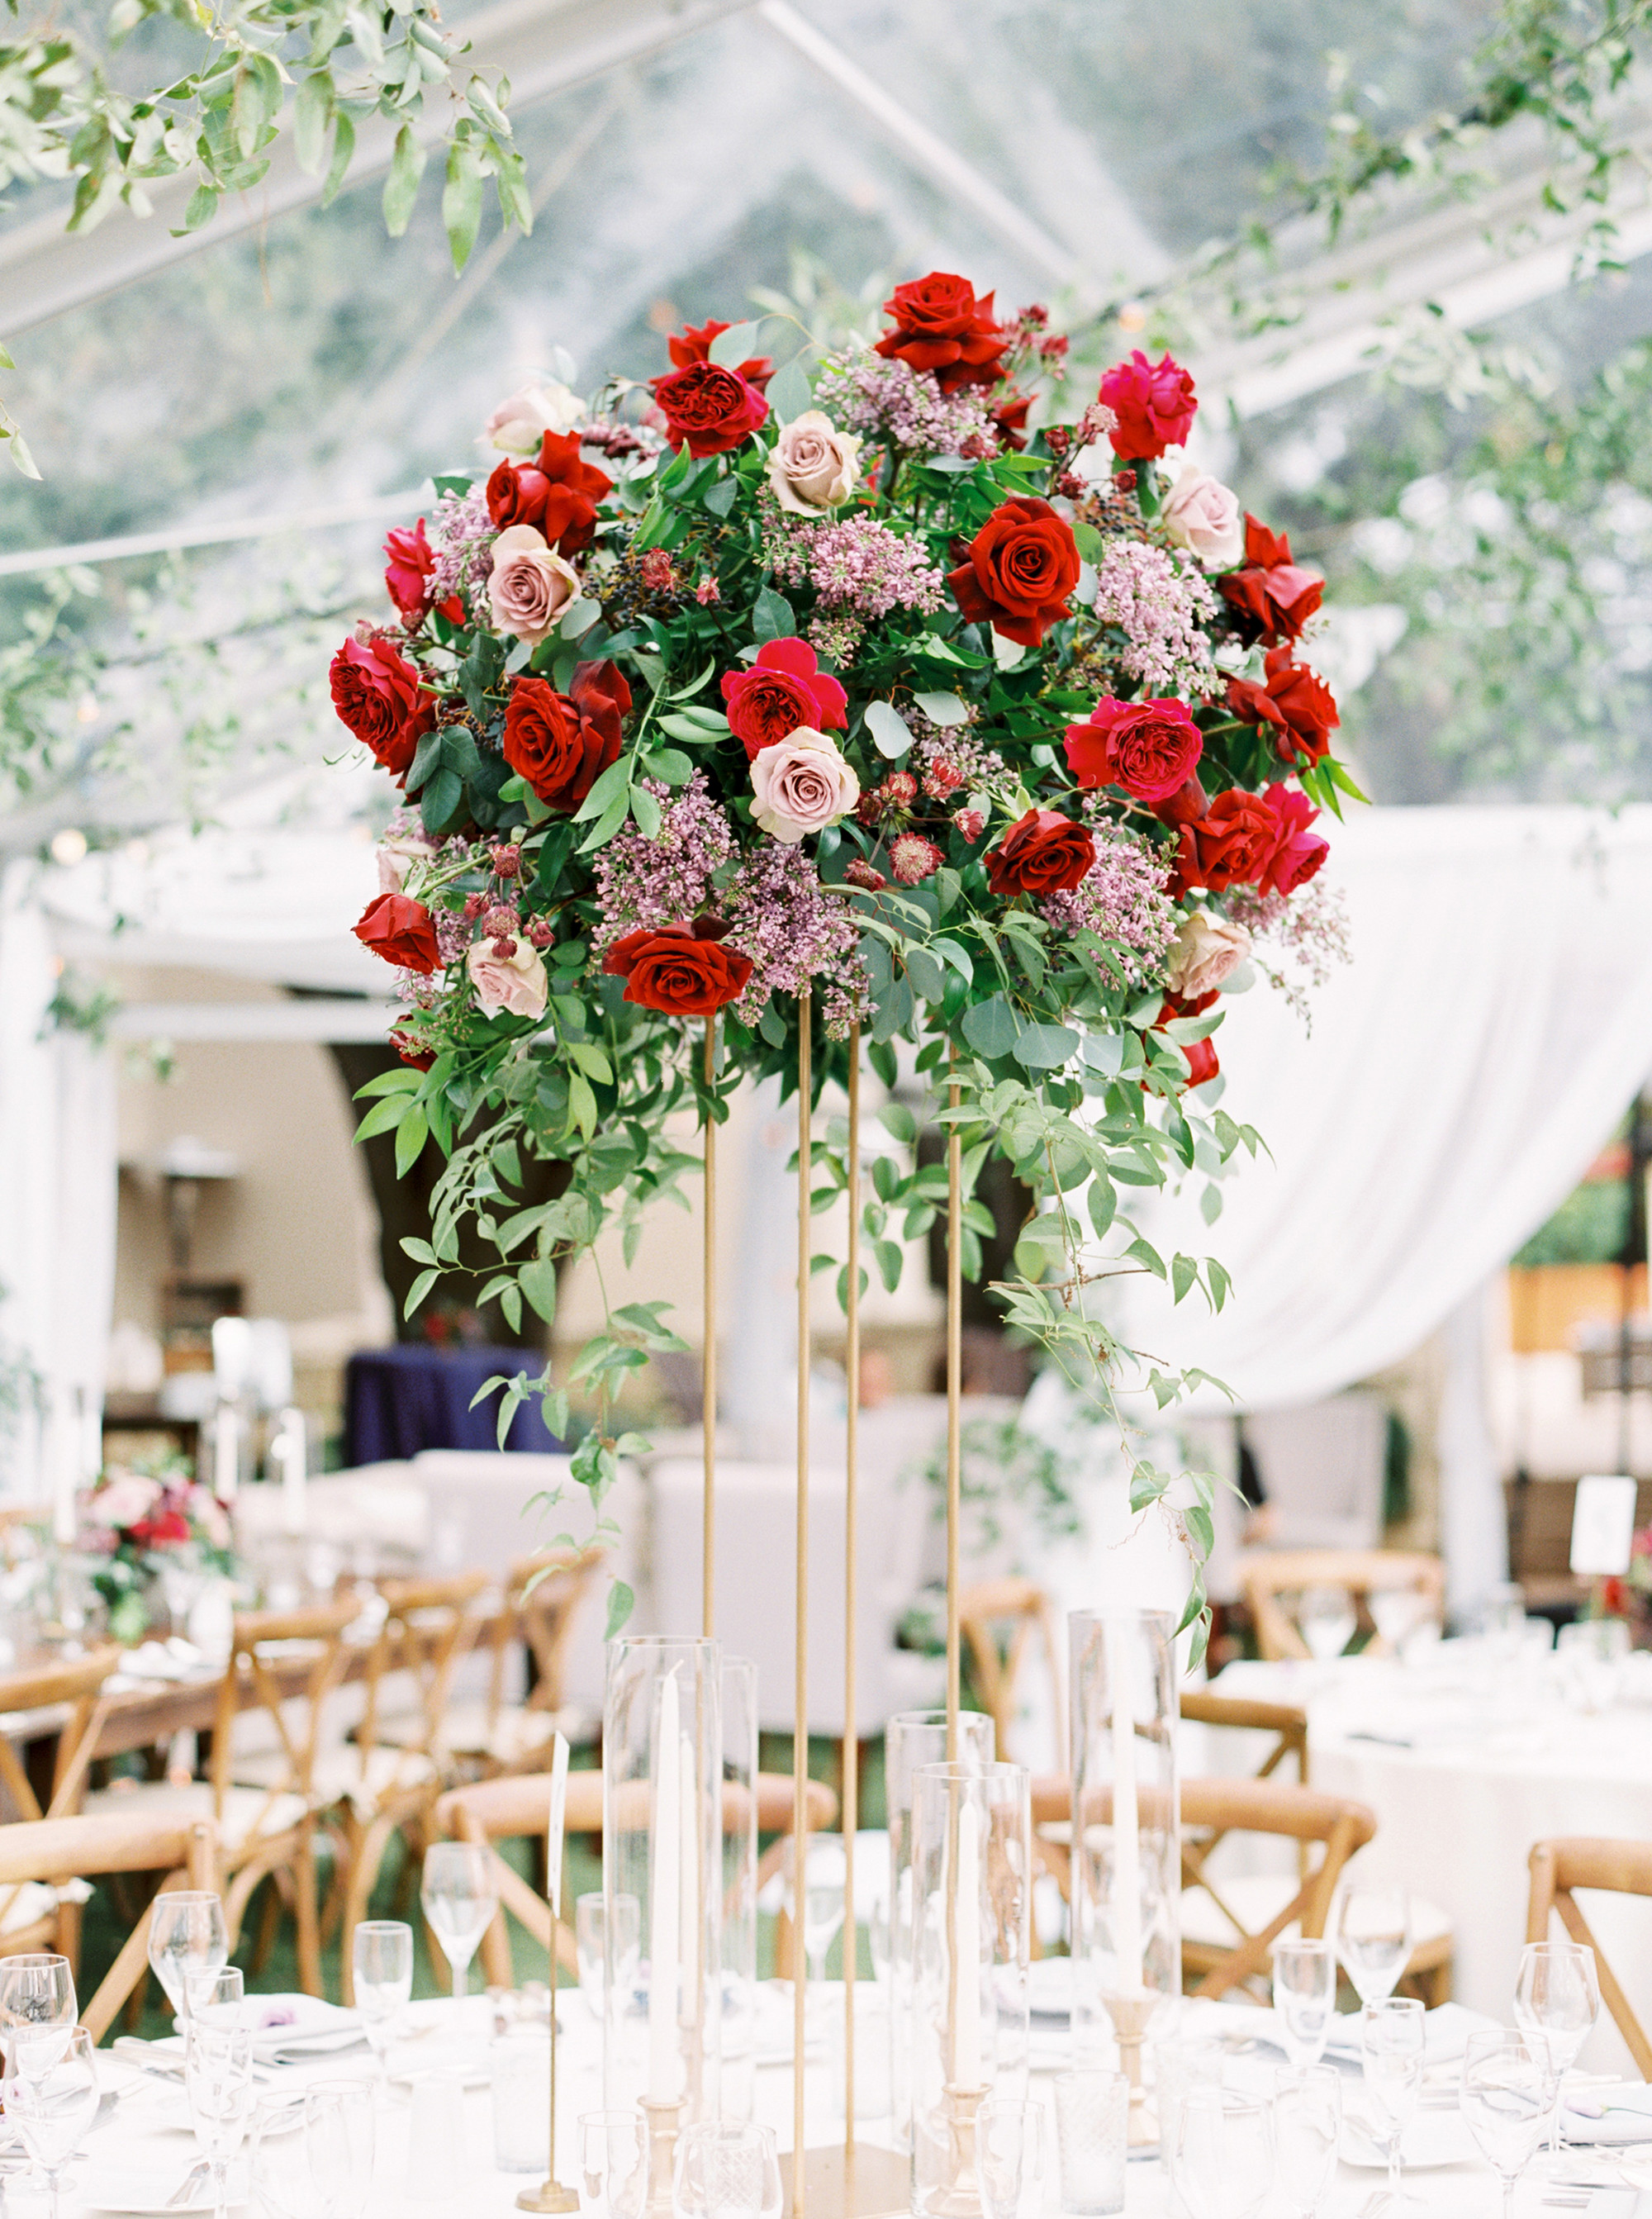 The Pros and Cons of Tall Wedding Centerpieces, According to Florists